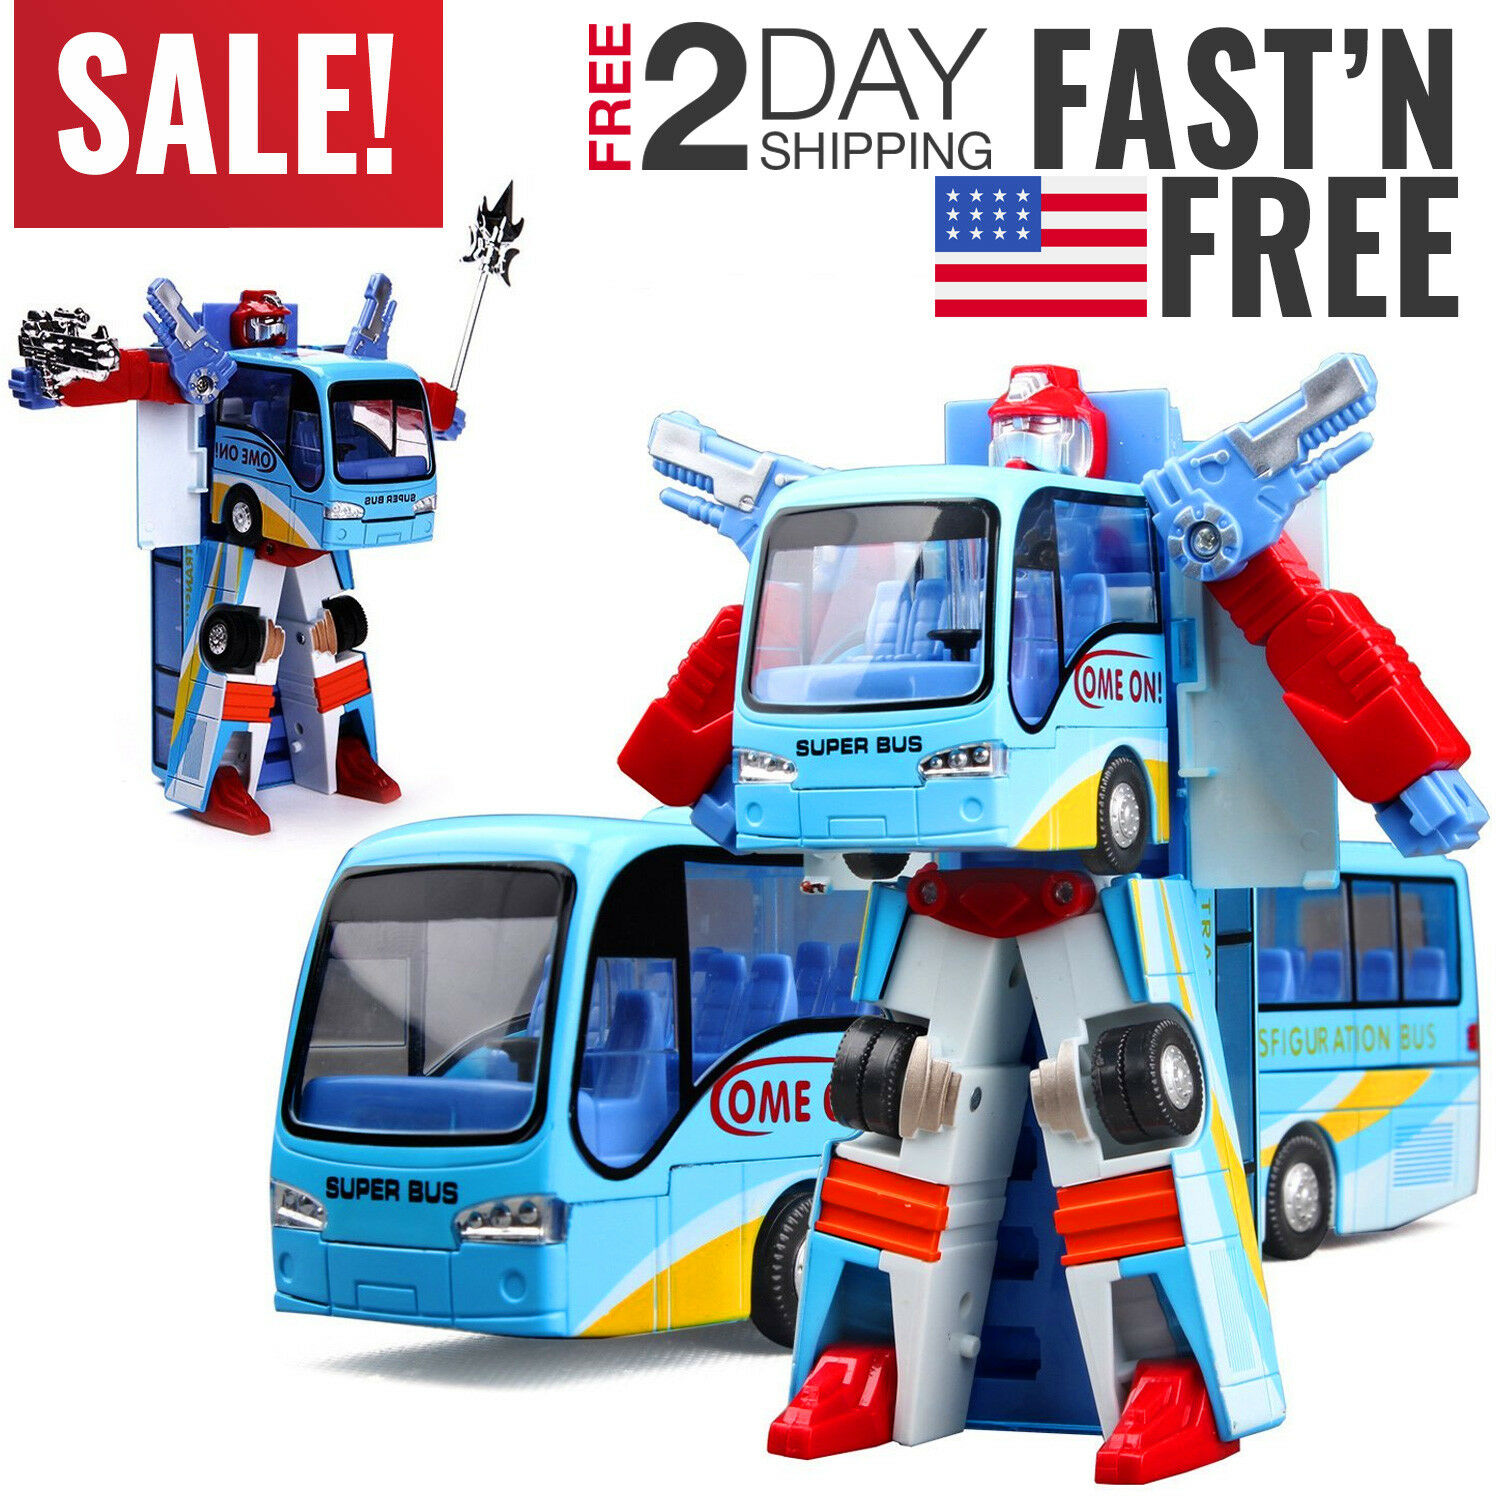 Toys For Boys Robot Bus Kids Toddler Robot 3 4 5 6 7 8 9 Year Old